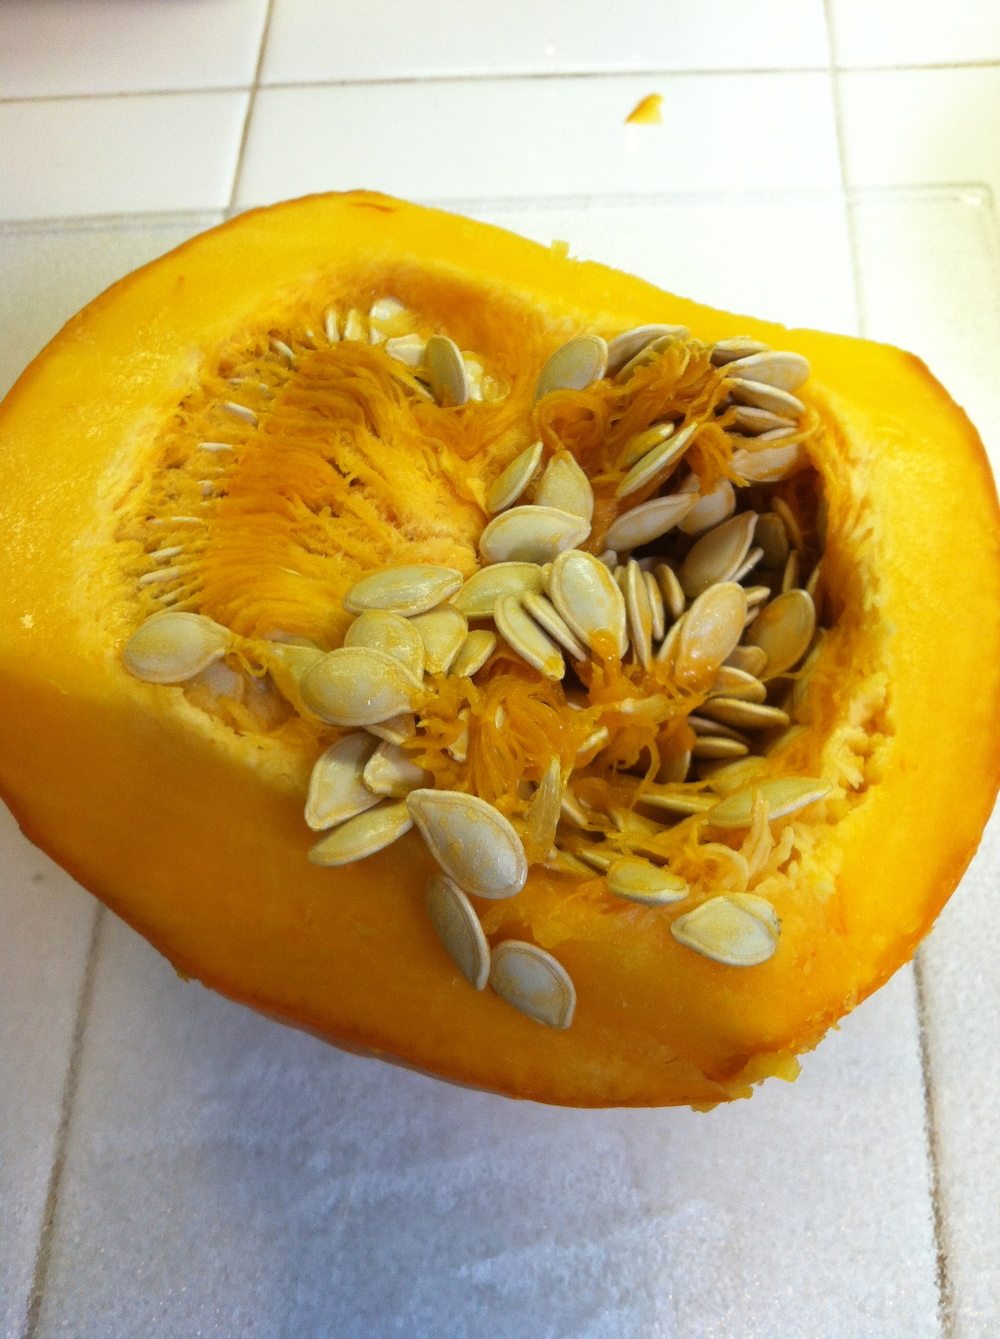 pumpkin seeds in pumpkin.jpg